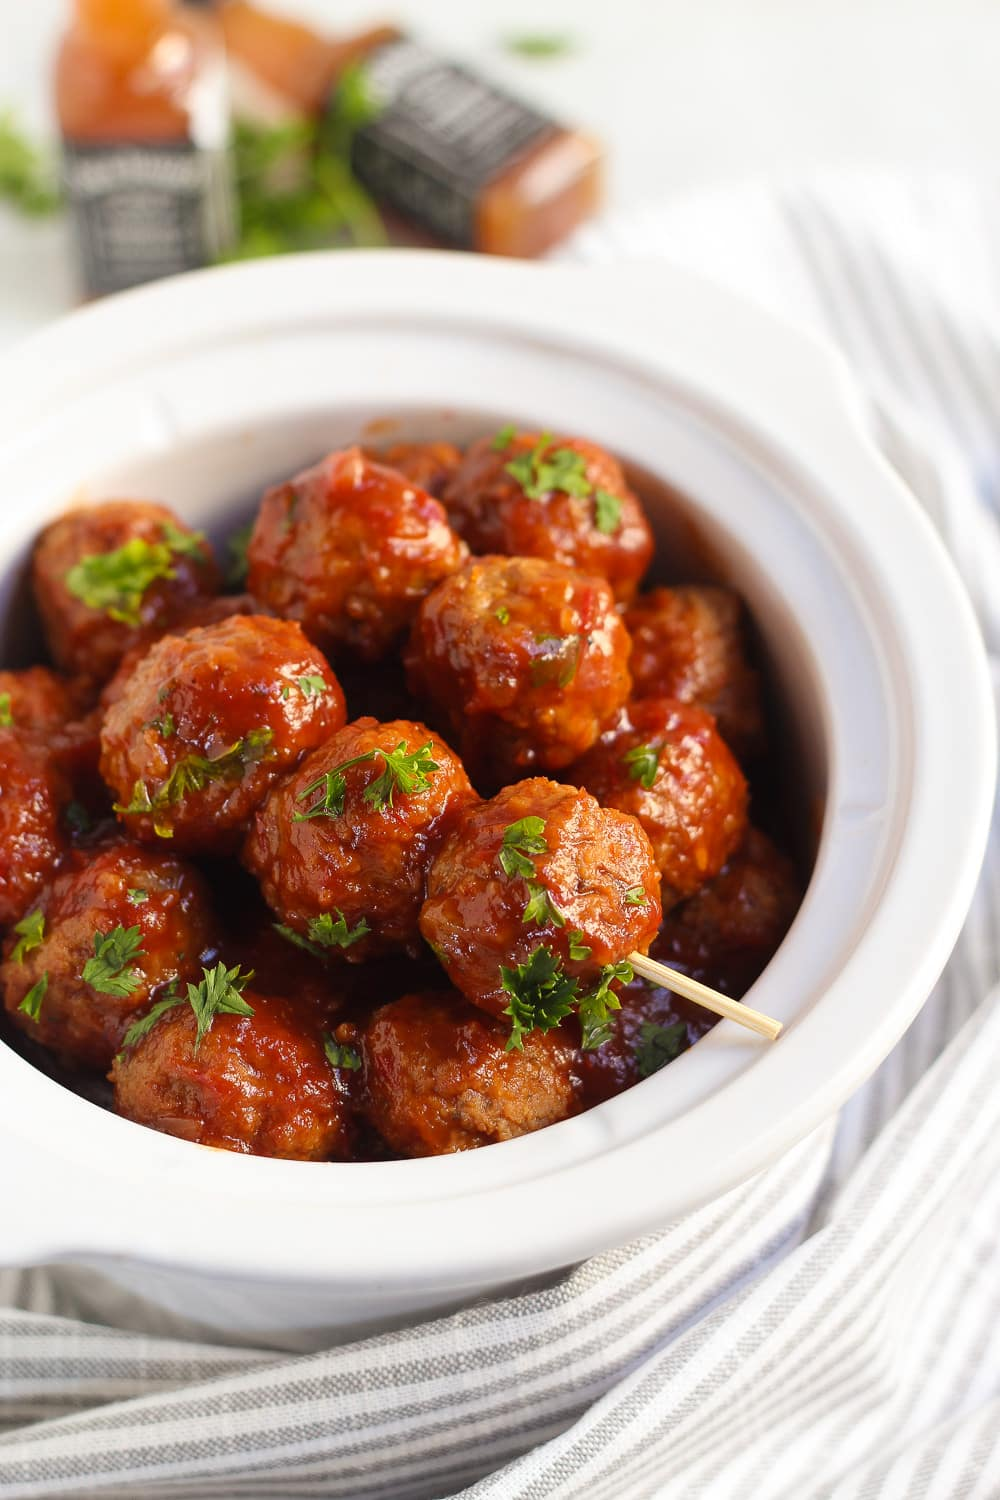 Slow cooker filled with bourbon whiskey barbecue meatballs